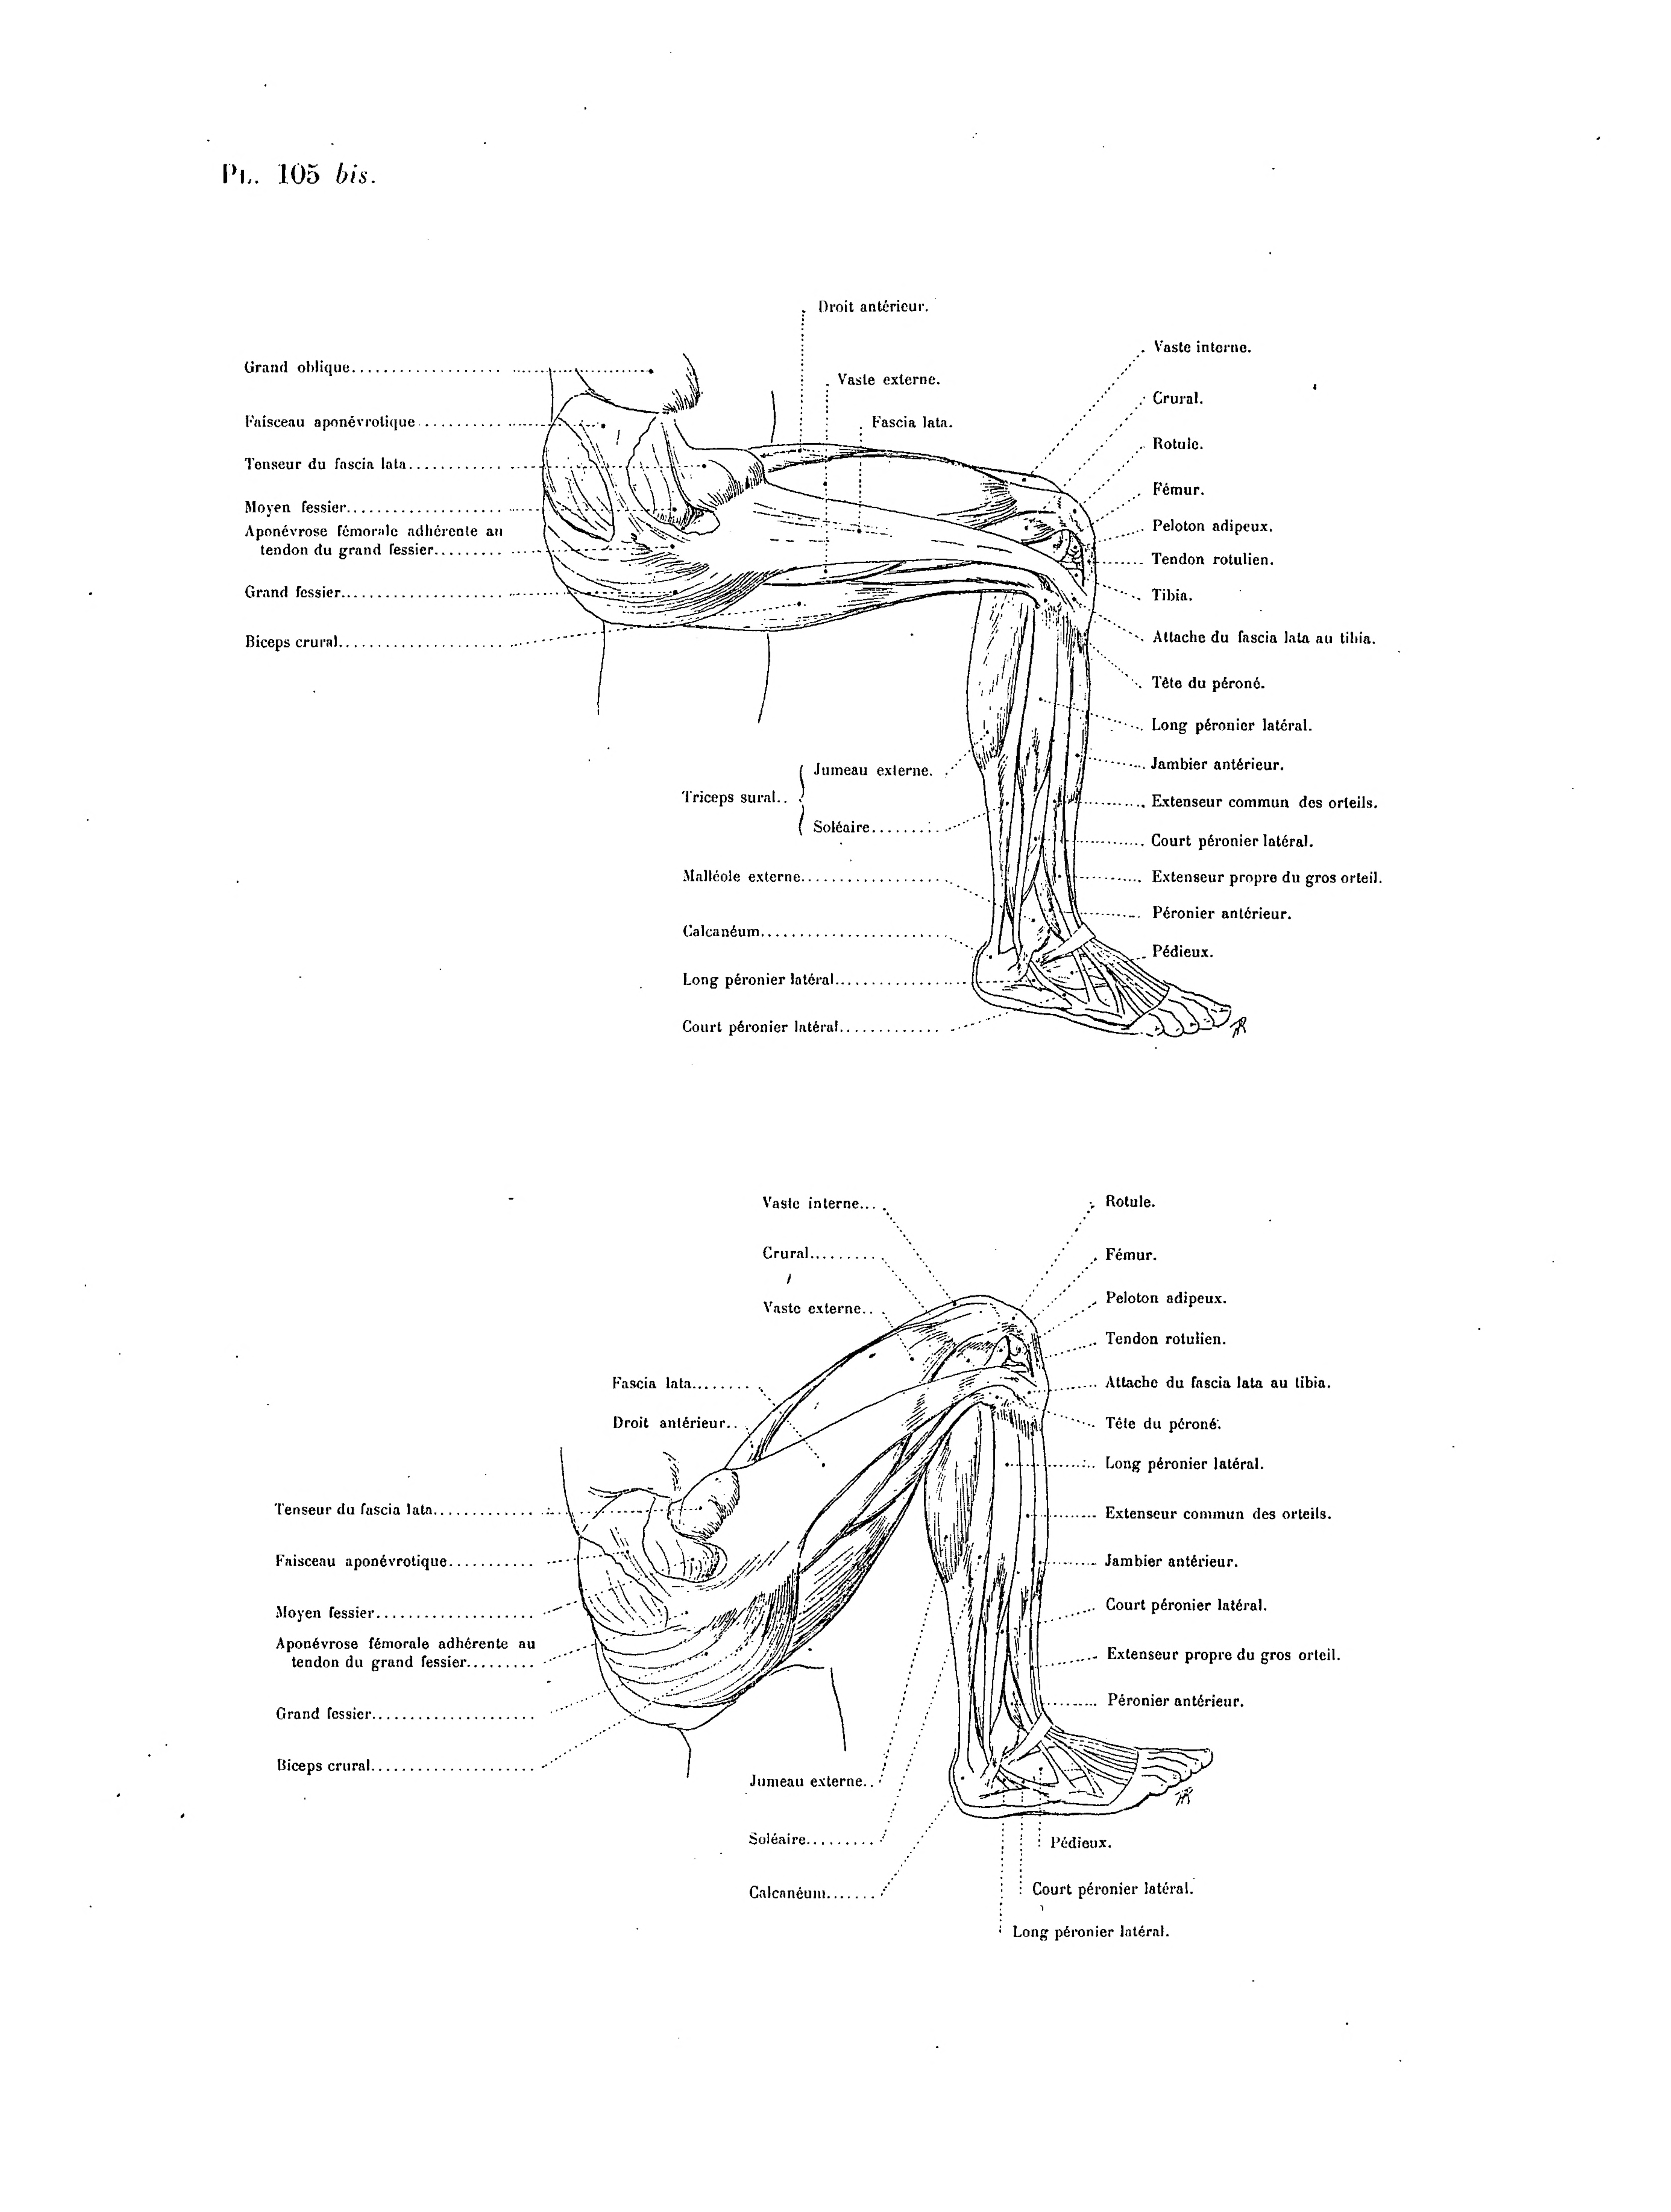 File:Richer - Anatomie artistique, 2 p. 141.png - Wikimedia Commons